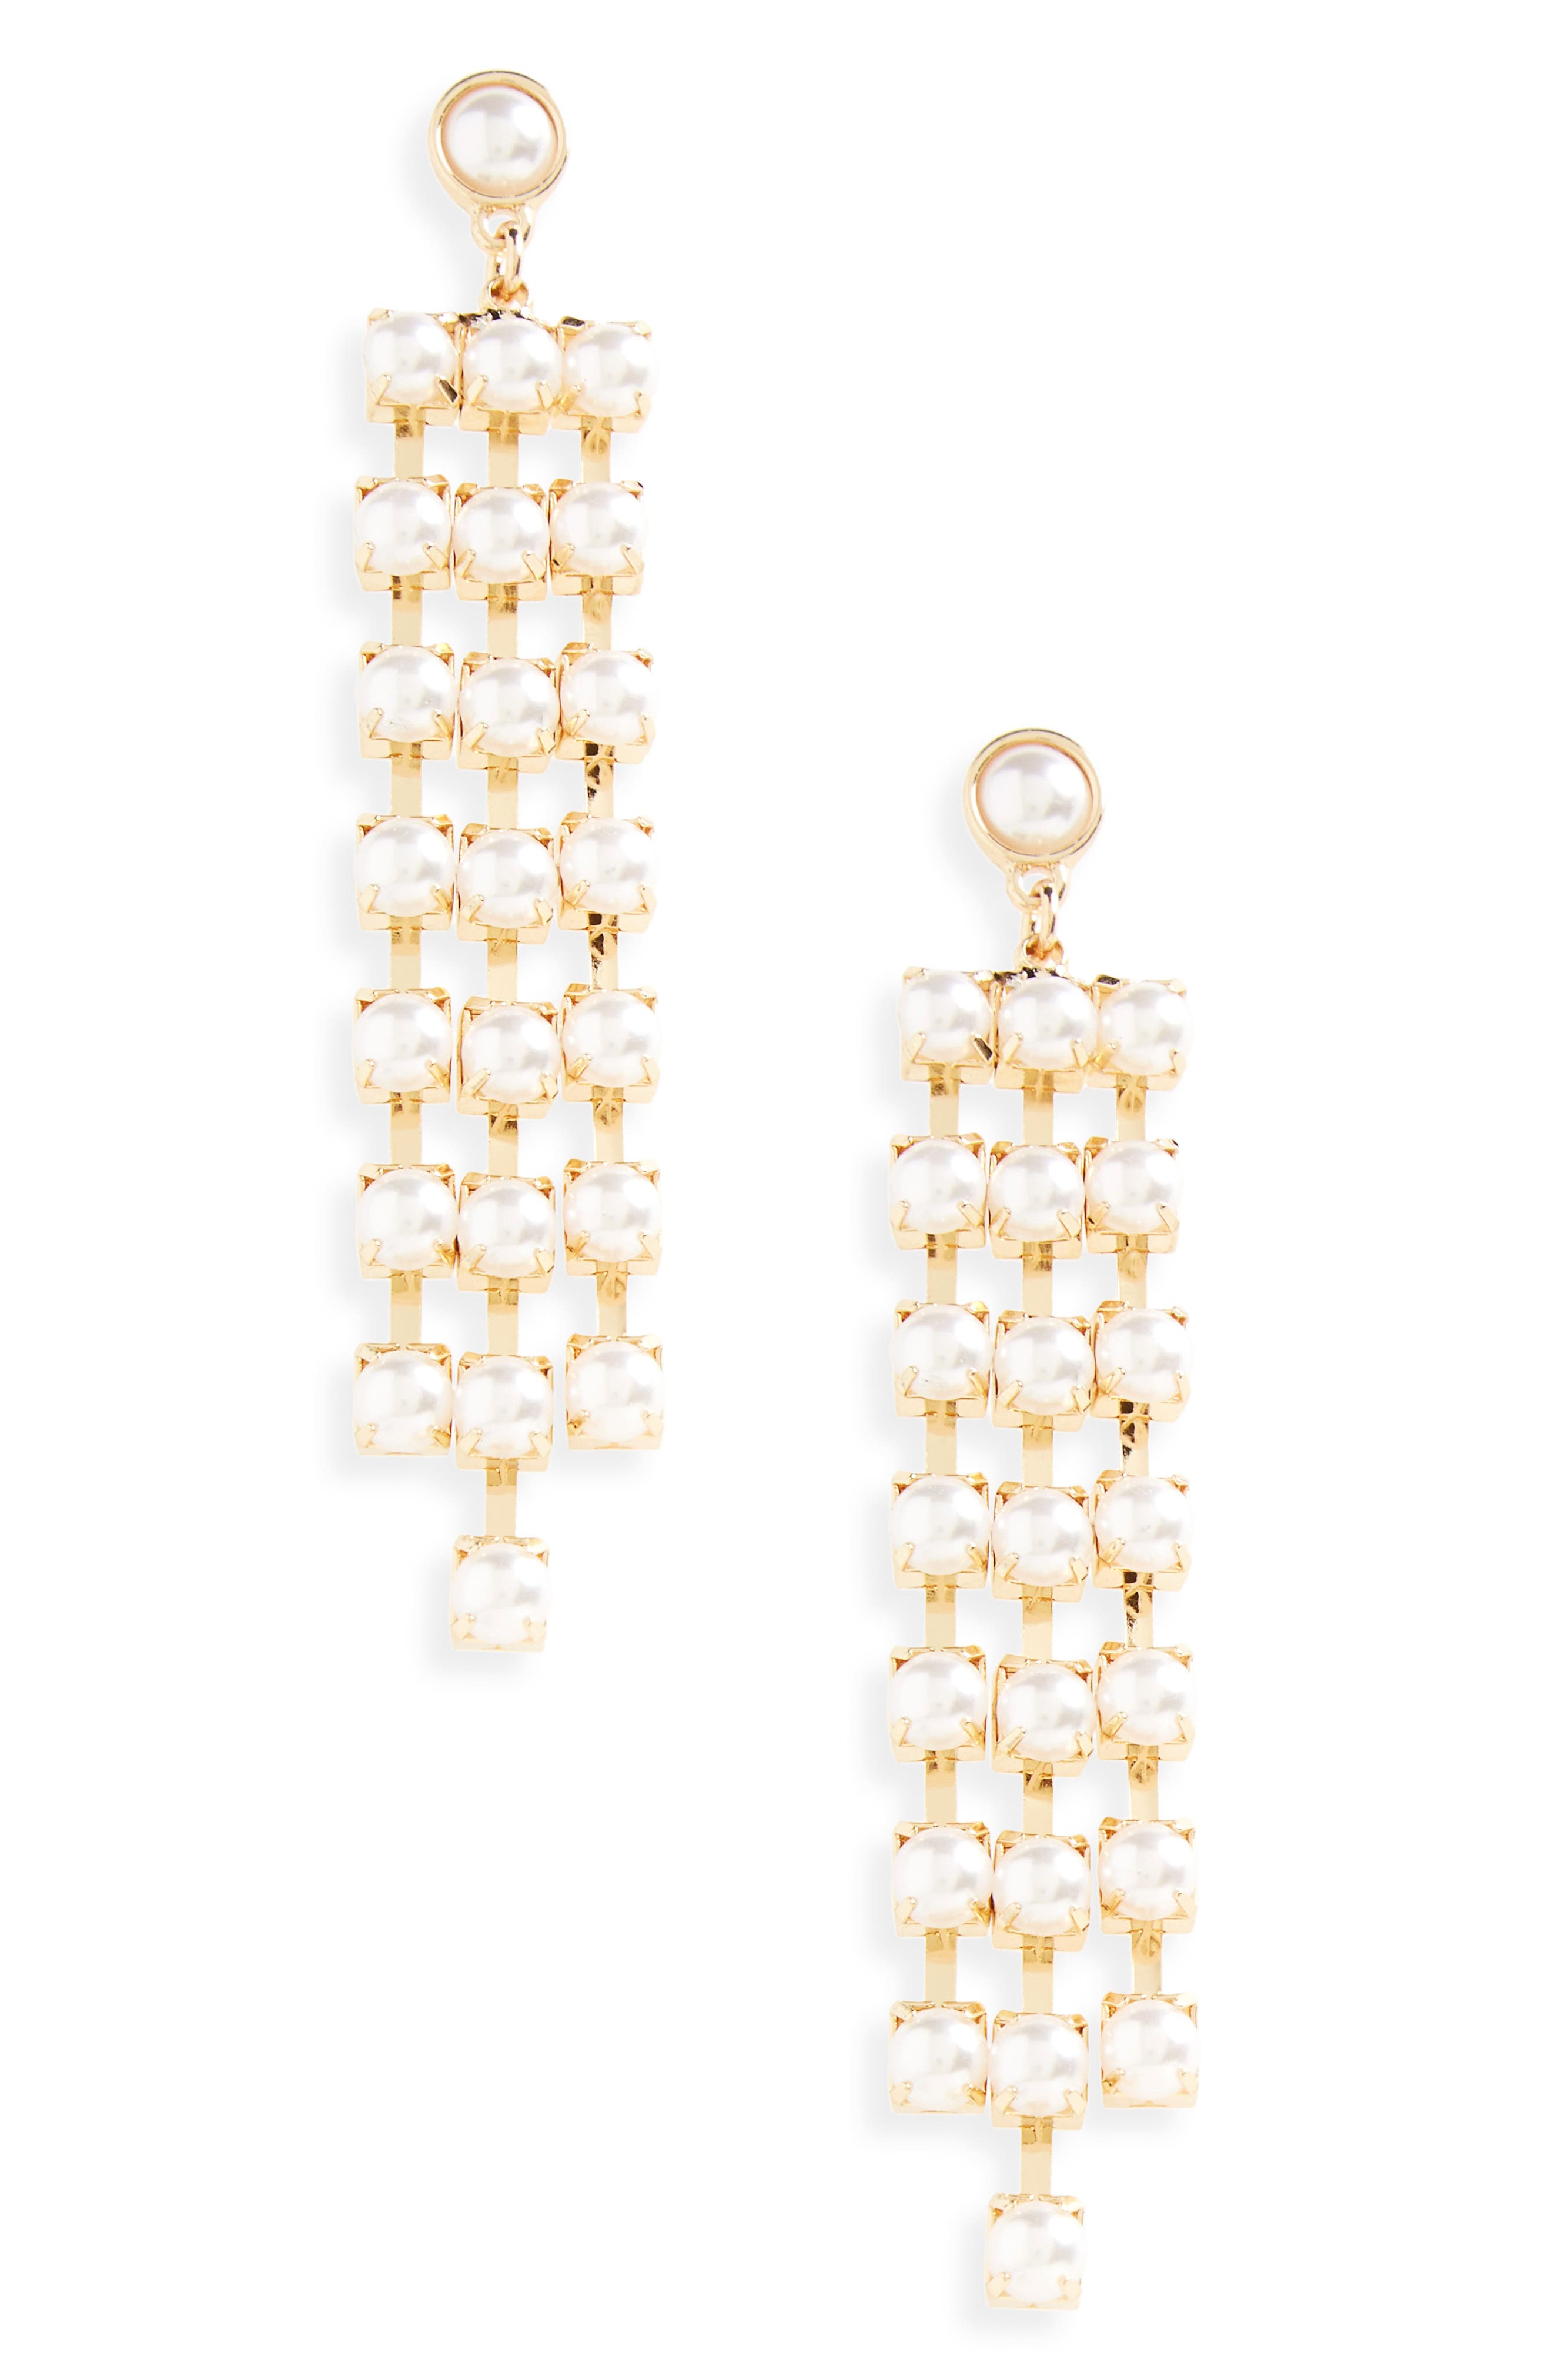 Imitation Pearl Chandelier Earrings,                             Main thumbnail 1, color,                             Gold/ Pearl